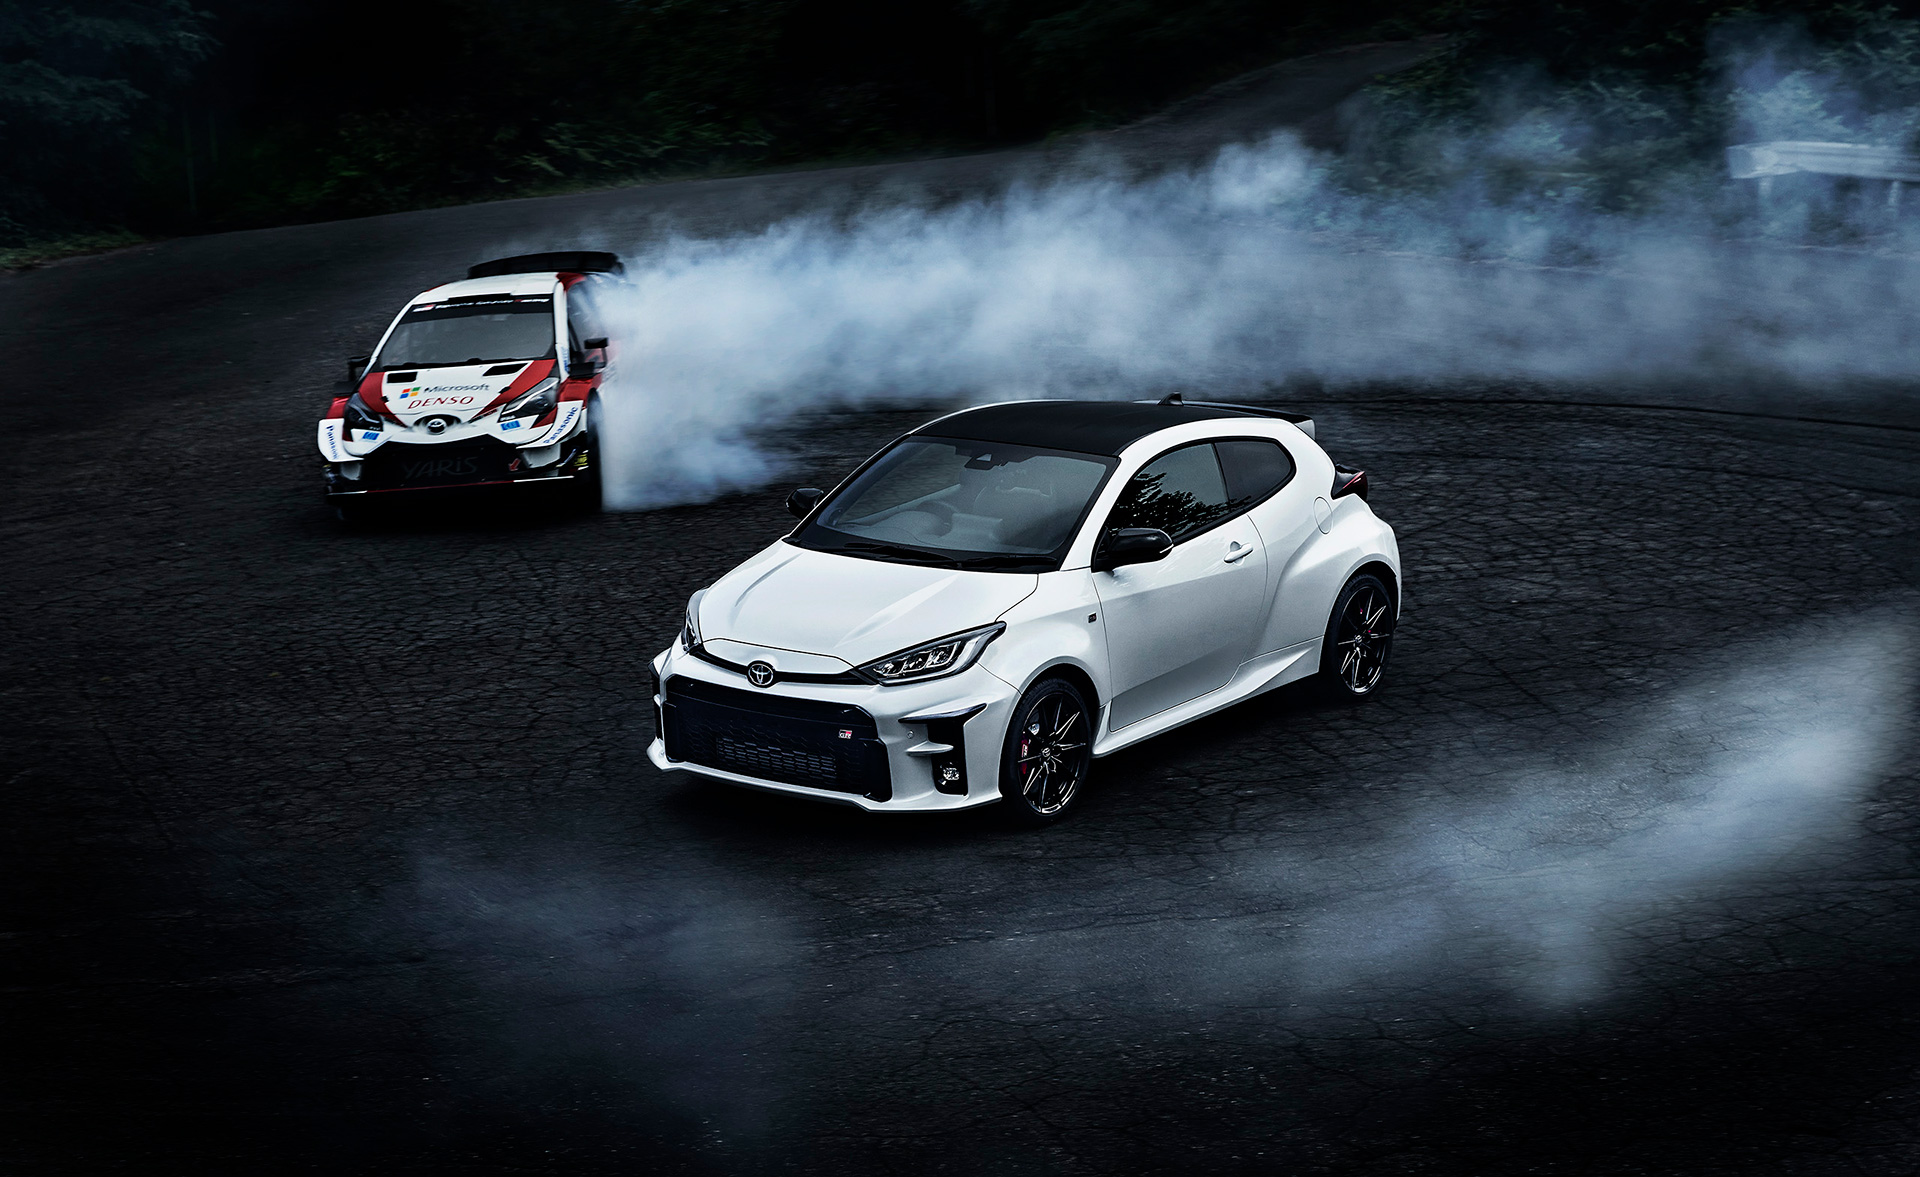 Toyota Celebrates Launch of New GR Yaris in Japan with Virtual EventGR YARIS ONLINE FES Event to be Held September 16 - Image 8